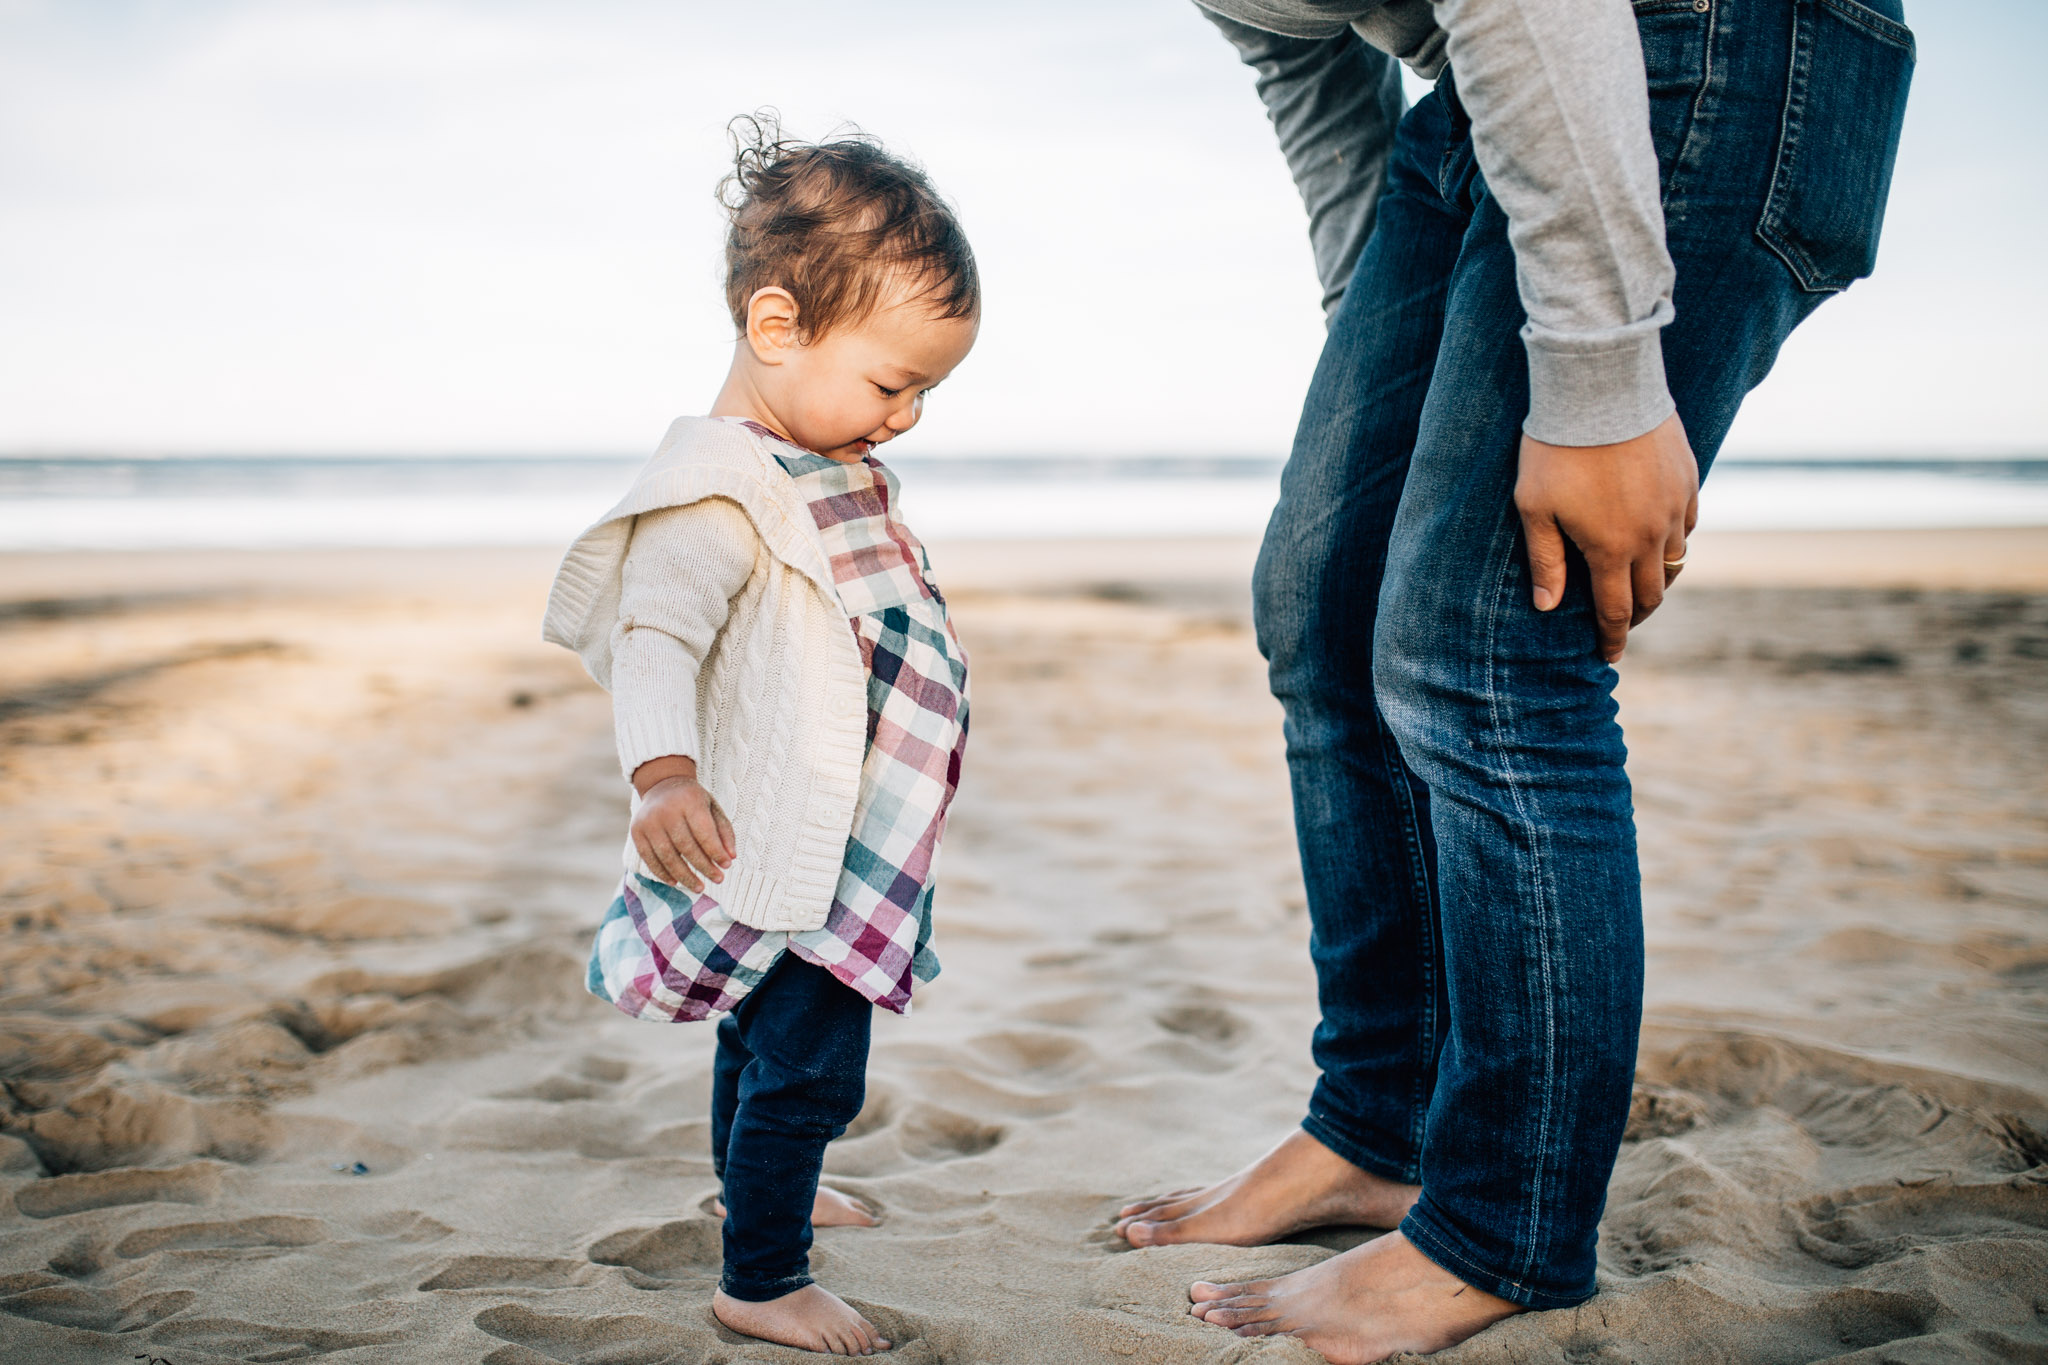 father-and-daughter-standing-on-sand (1 of 1).jpg